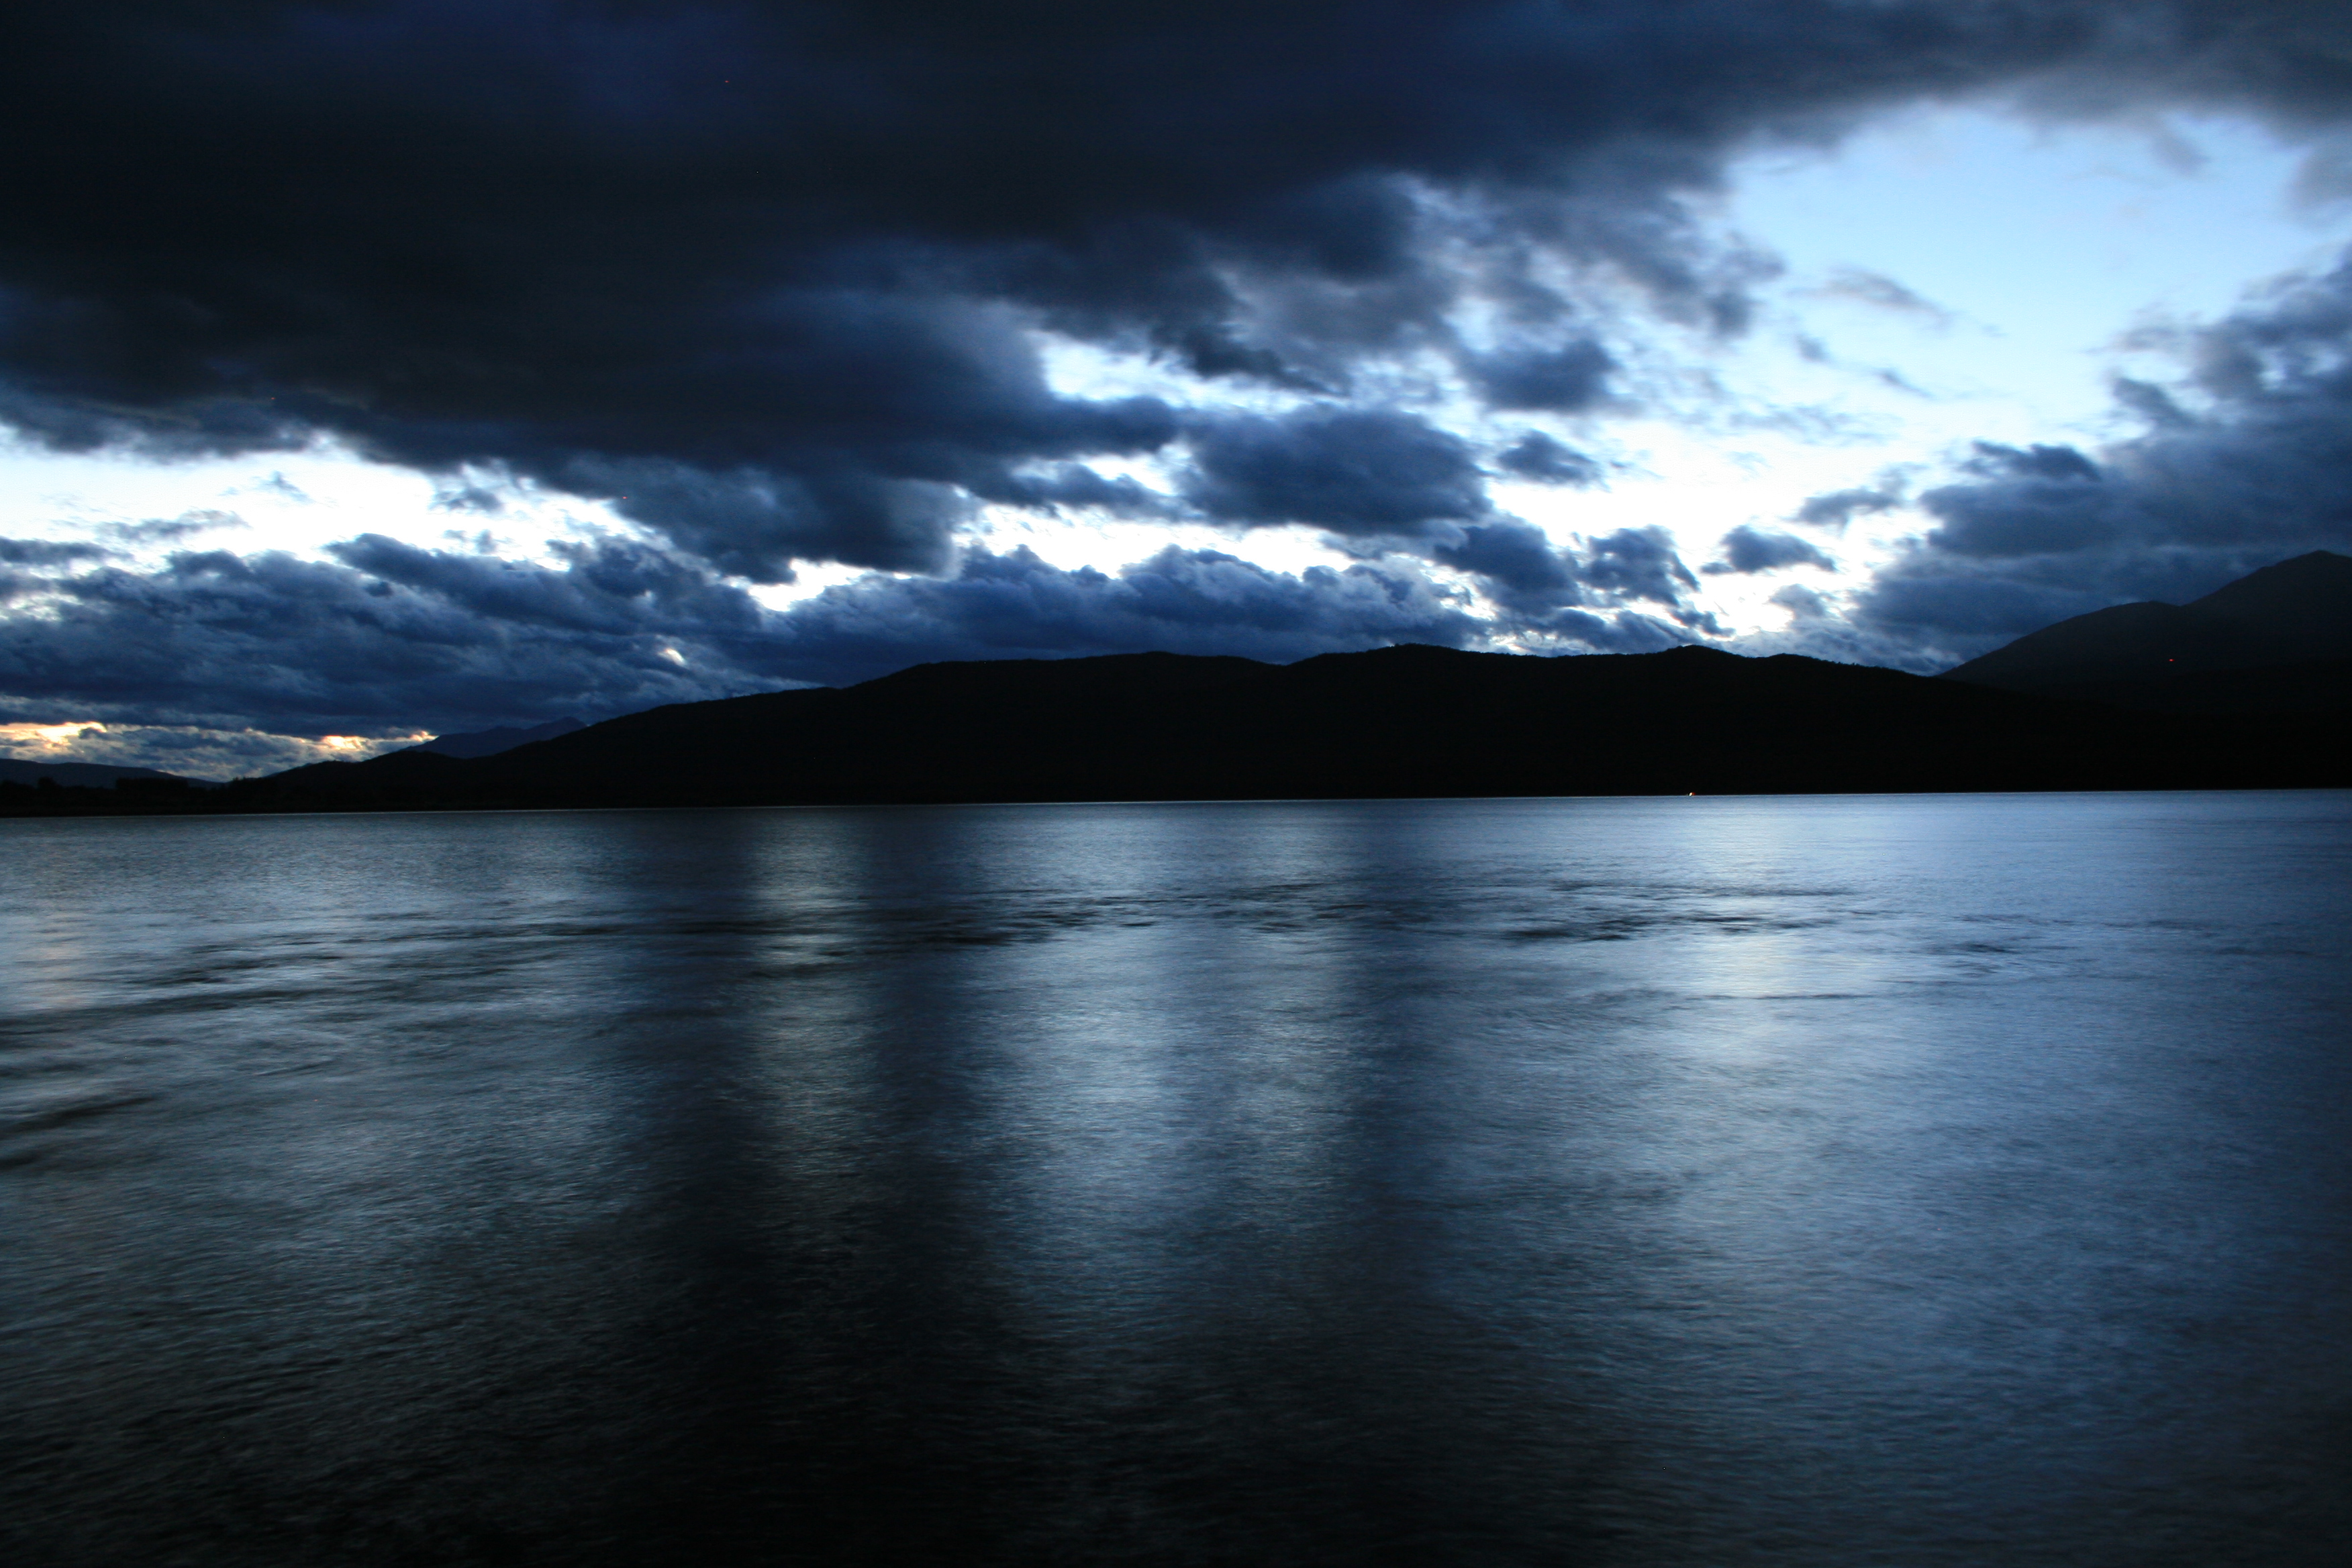 File:Lake Te Anau Night.JPG - Wikipedia, the free encyclopedia